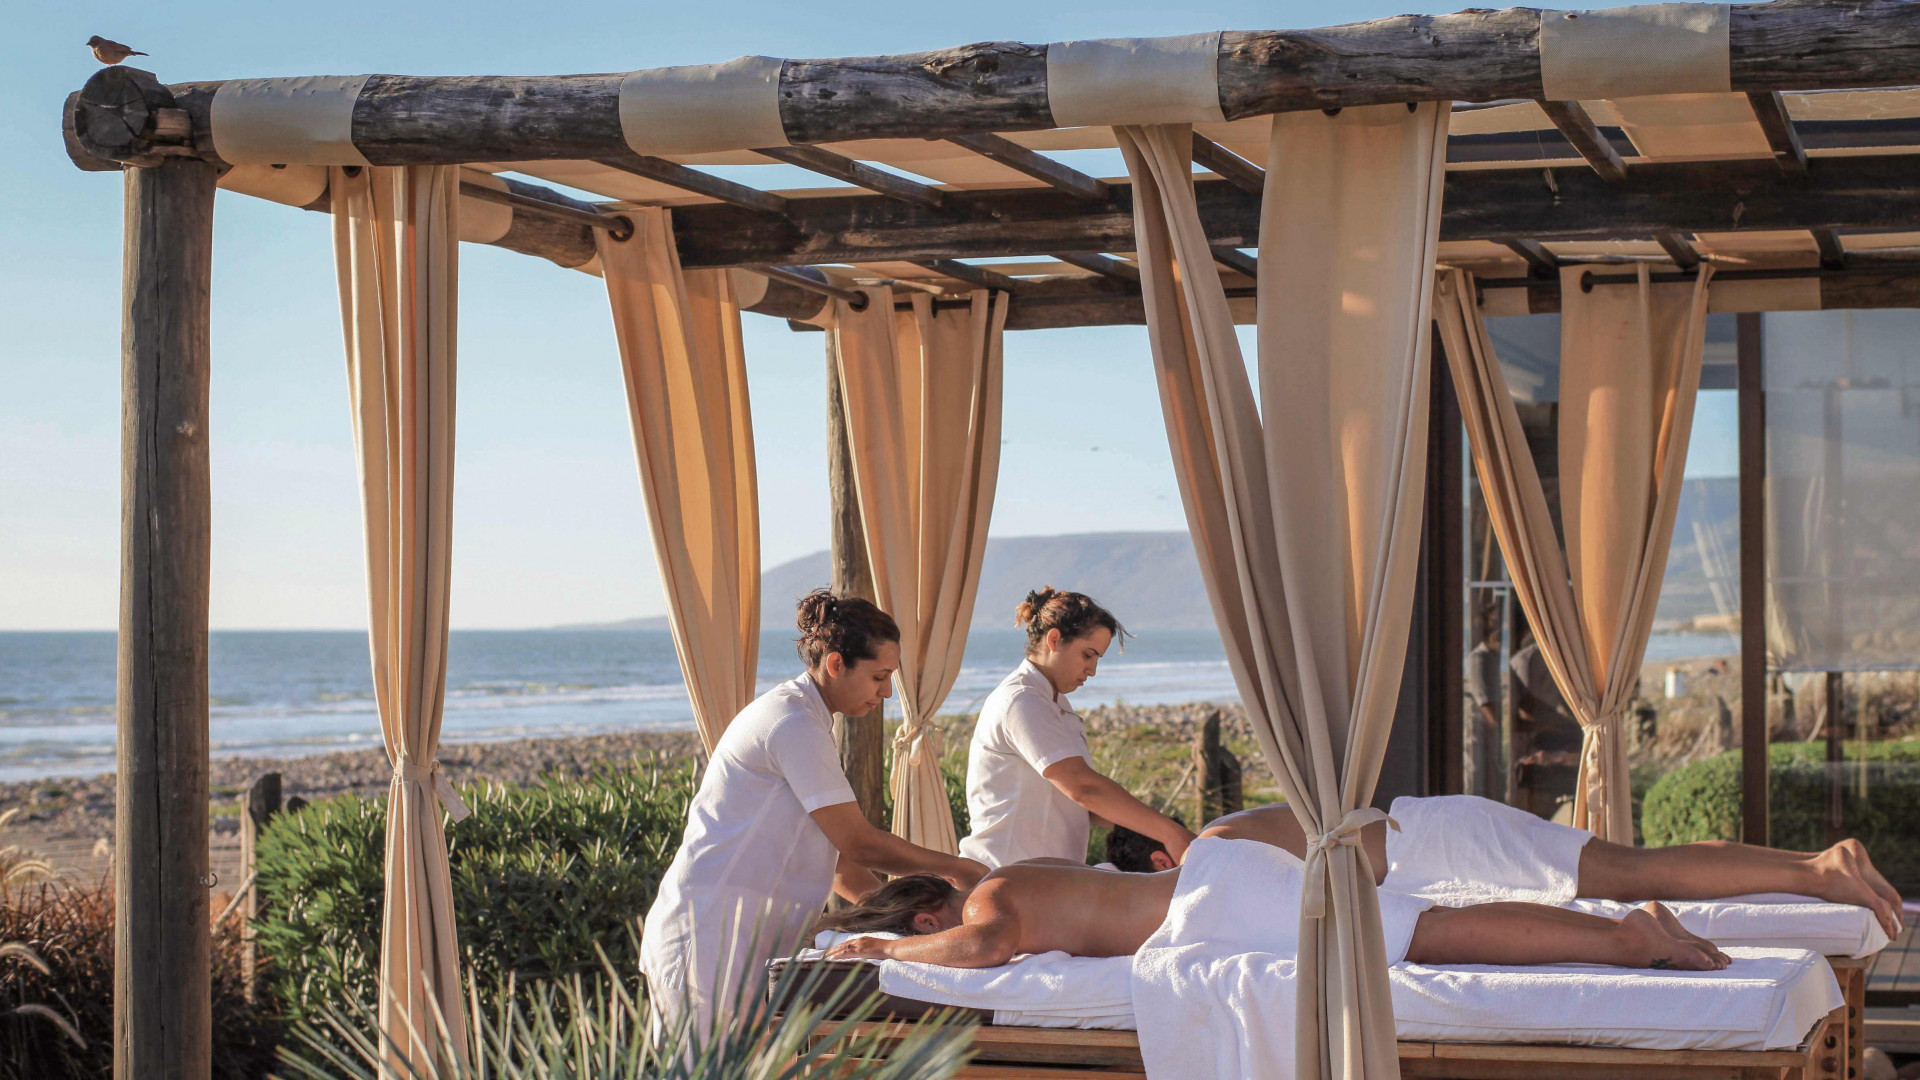 Outdoor spa at Paradis Plage, Agadir, Morocco